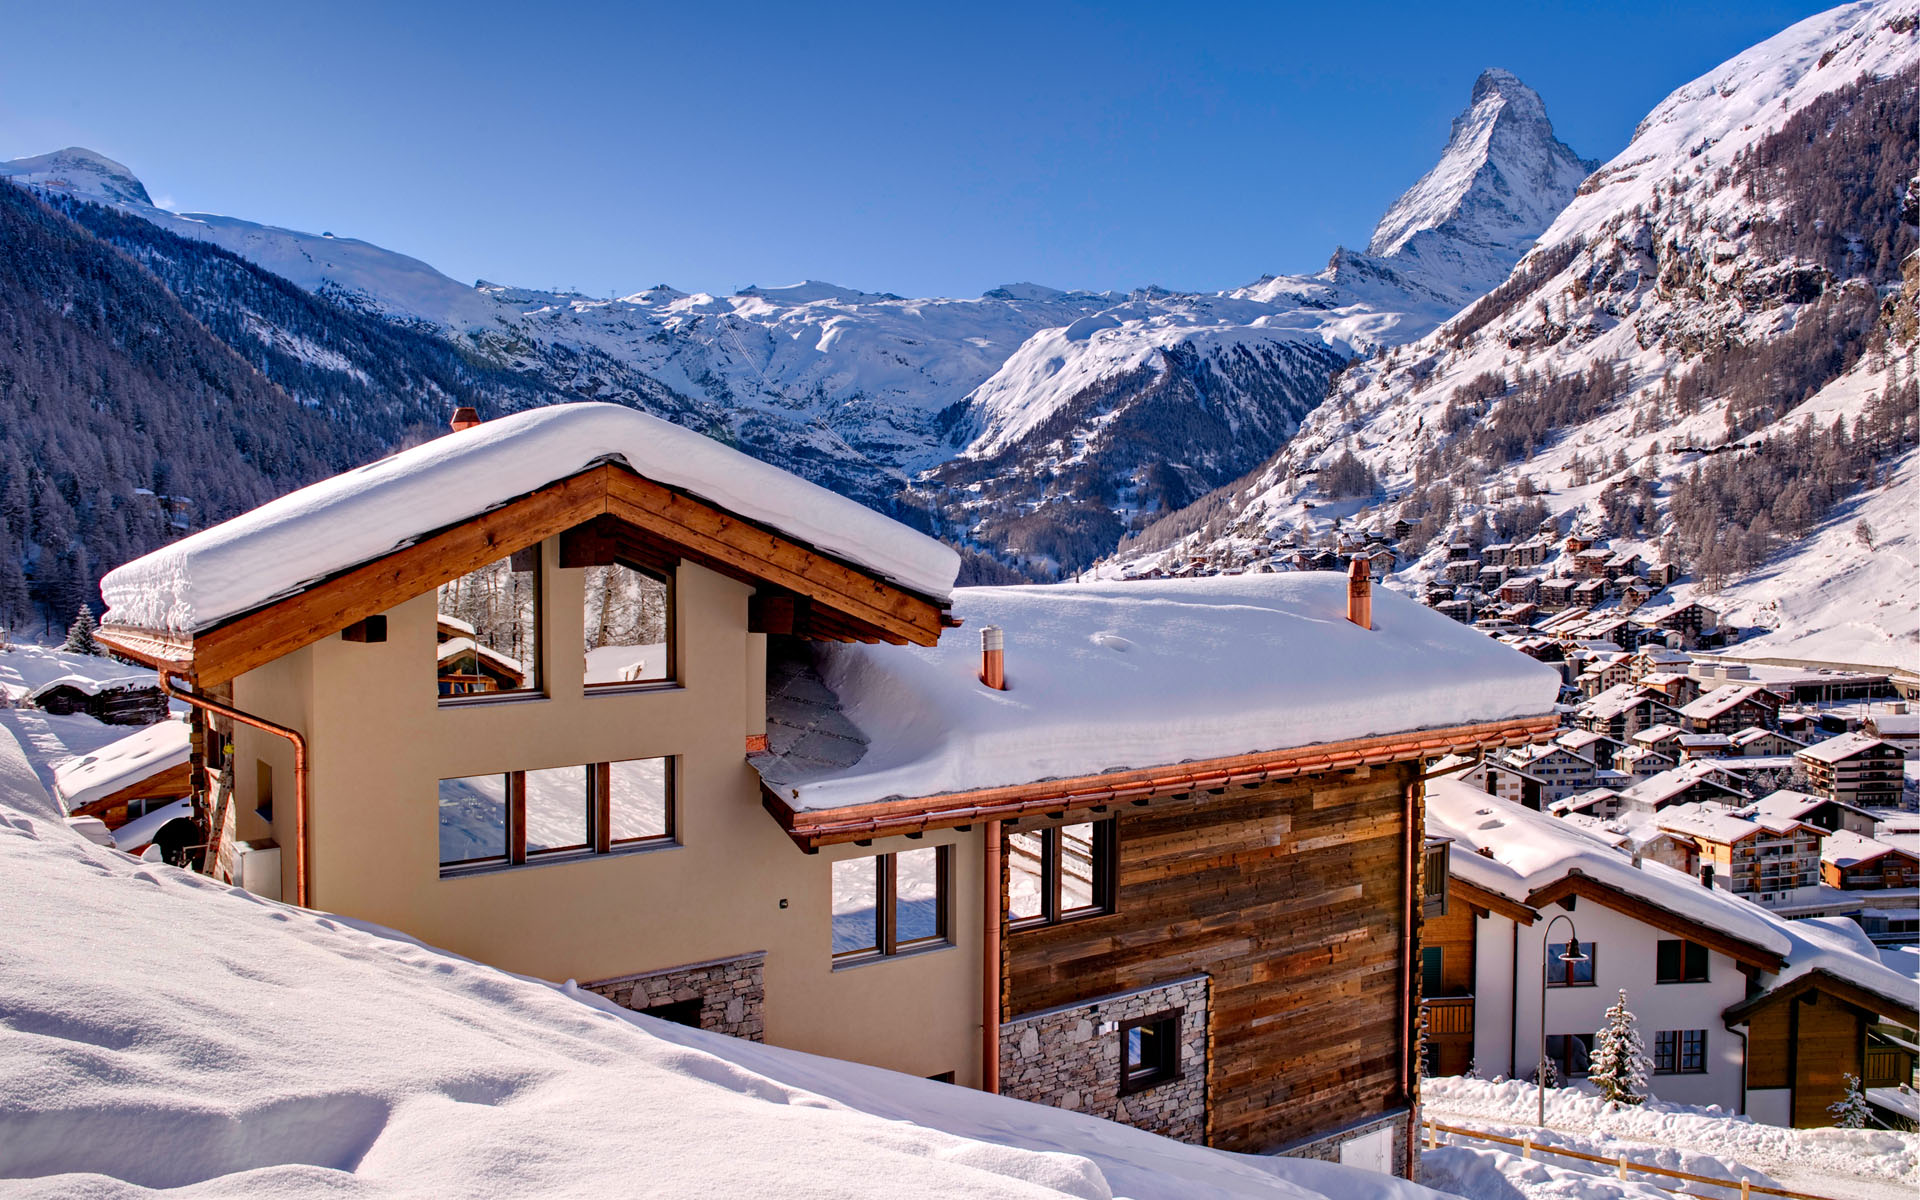 Ski Chalet in Zermatt with Matterhorn in the background